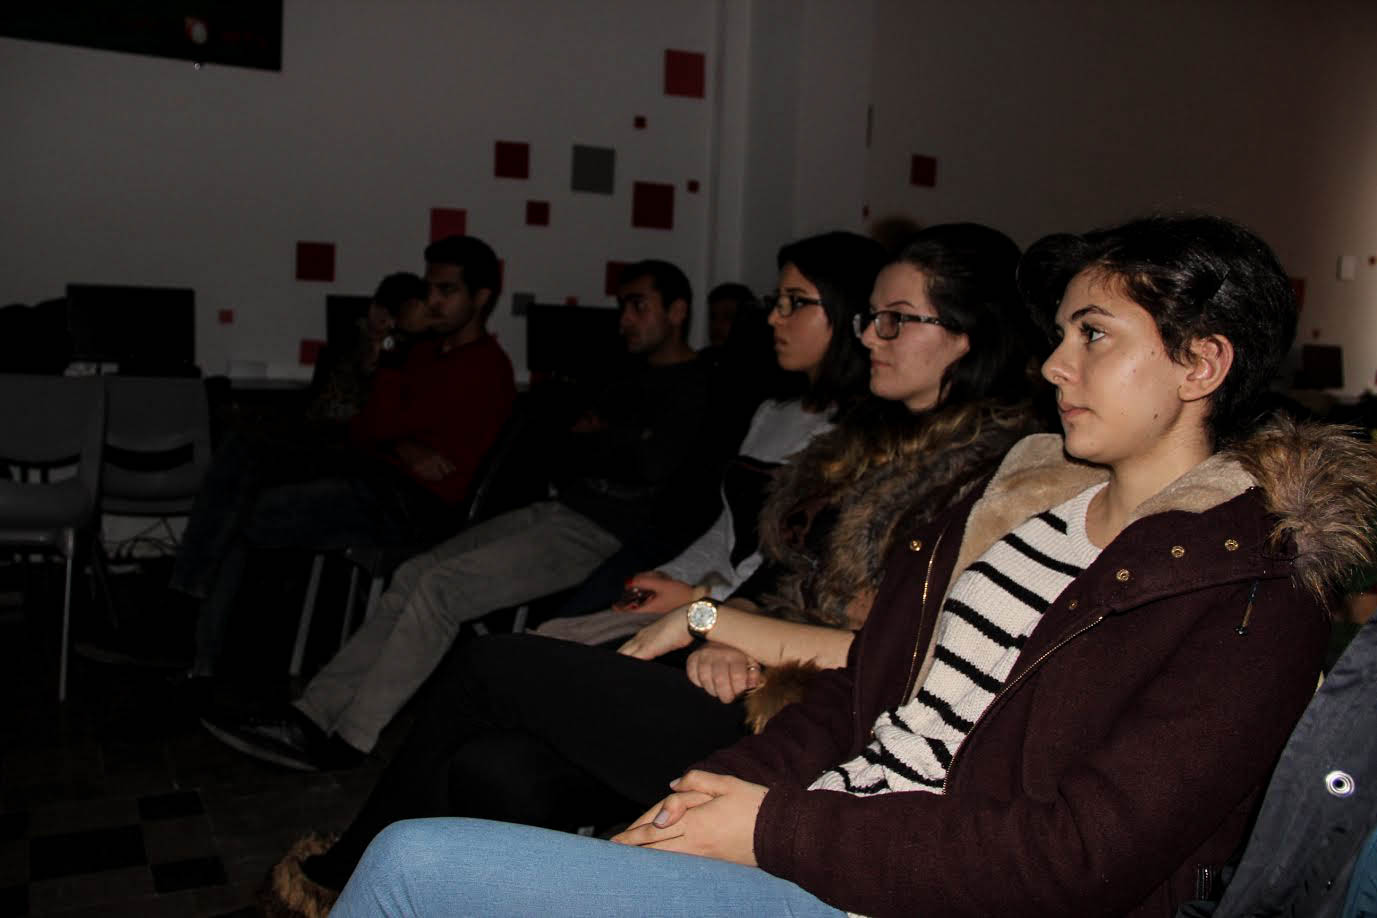 summary of movie club at eurasia international university youth the second meeting was solely dedicated to the movie grand budapest hotel which recounts the adventures of gustave h a legendary concierge at a famous